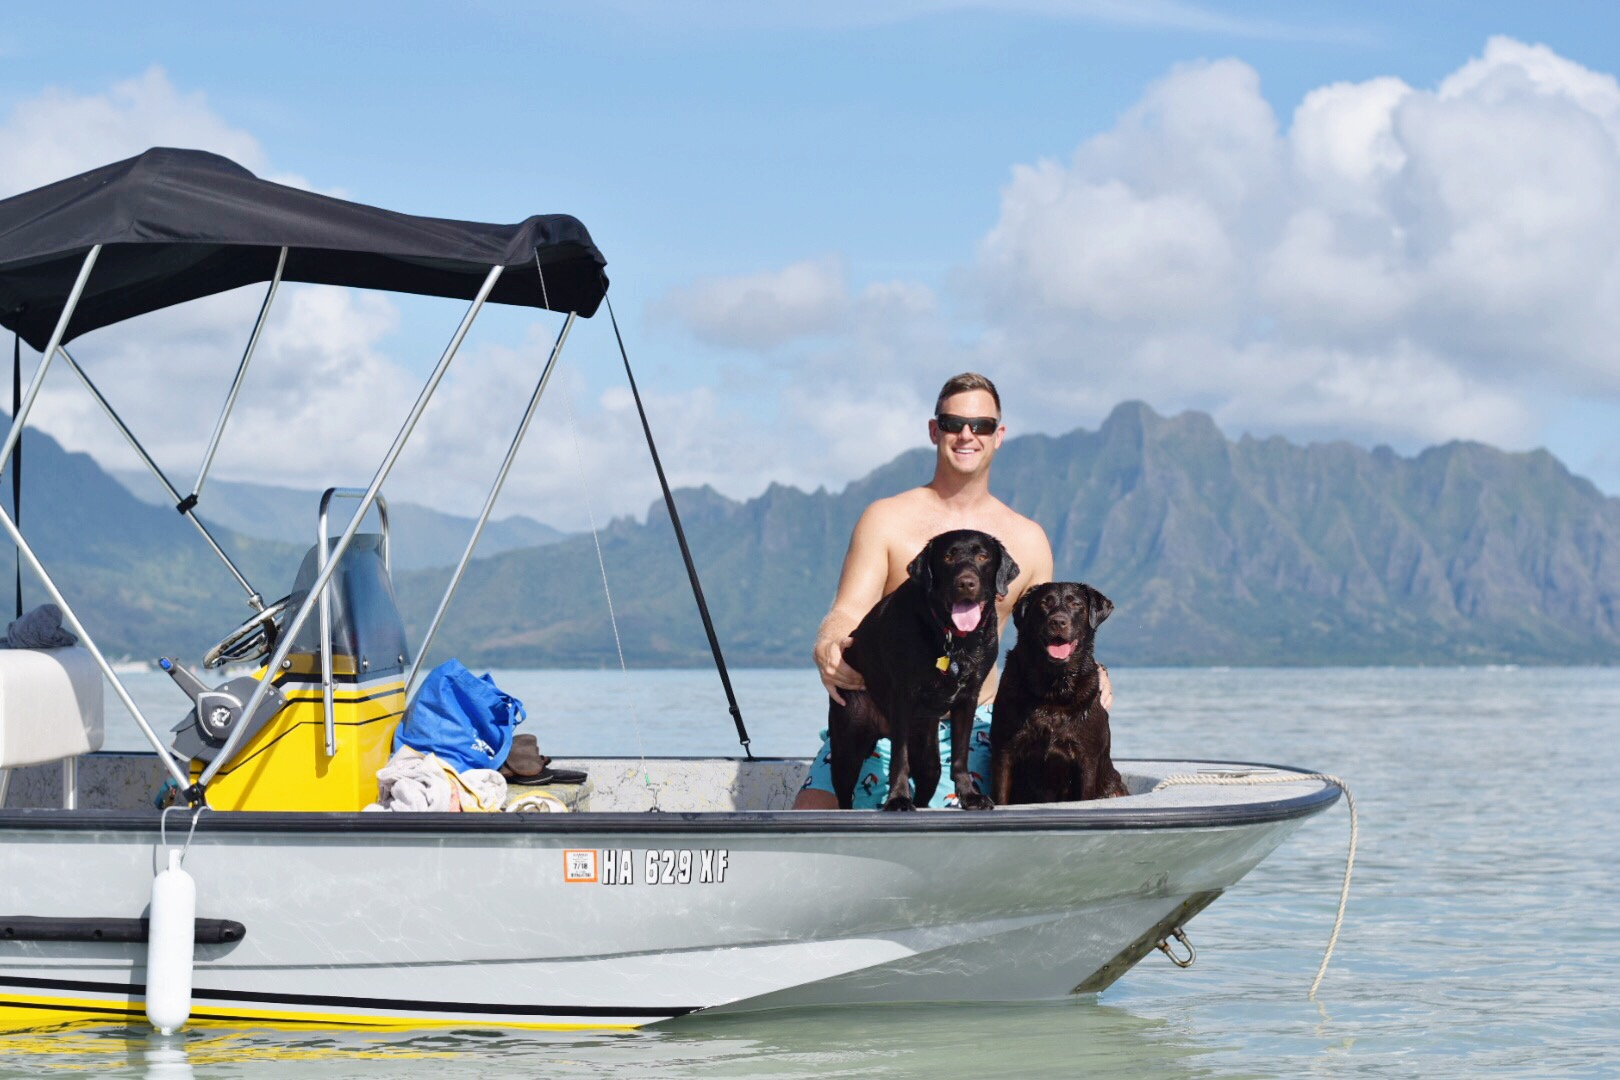 Kaneohe Sandbar - Oahu- Hawaii - Chocolate Labs - Our Weekend - Communikait by Kait Hanson